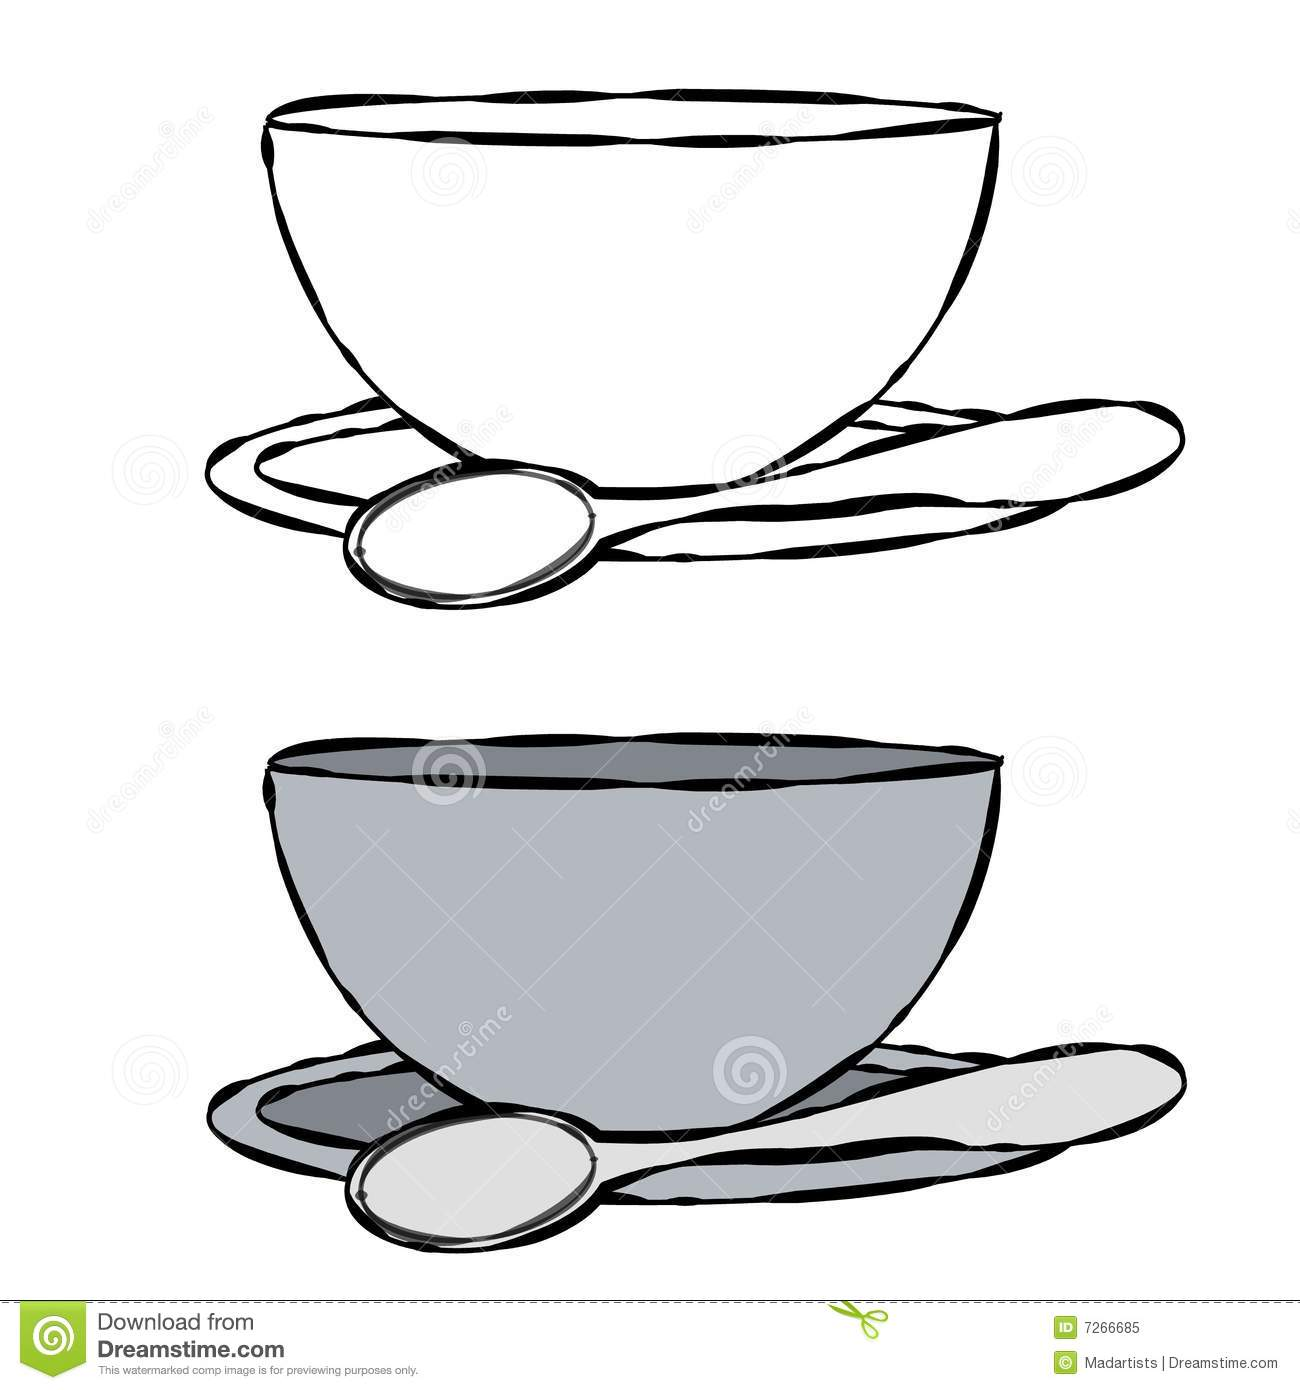 Food spoon bowl food clipart black and white.